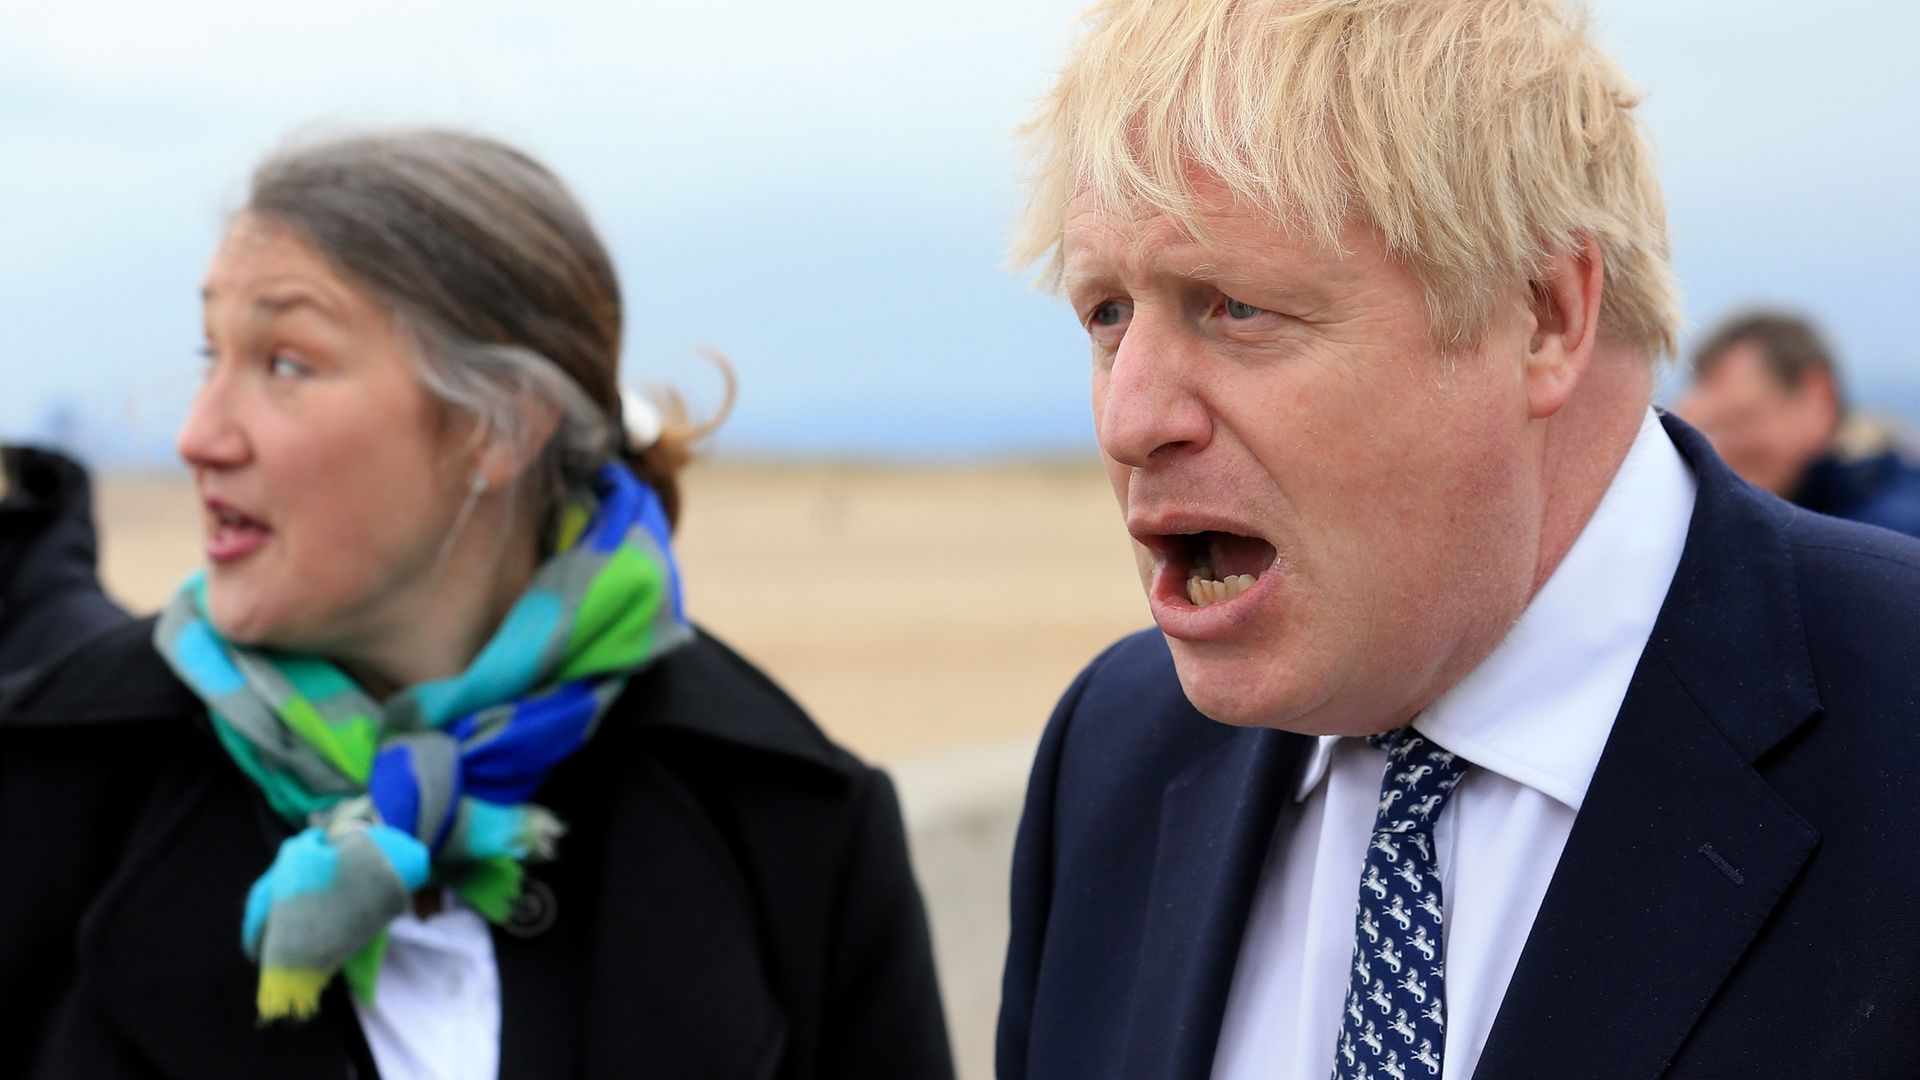 Prime minister Boris Johnson (right) reacts as he campaigns on behalf of Conservative Party candidate Jill Mortimer in Hartlepool, in the north-east of England ahead of the 2021 Hartlepool by-election to be held on May 6 - Credit: PA